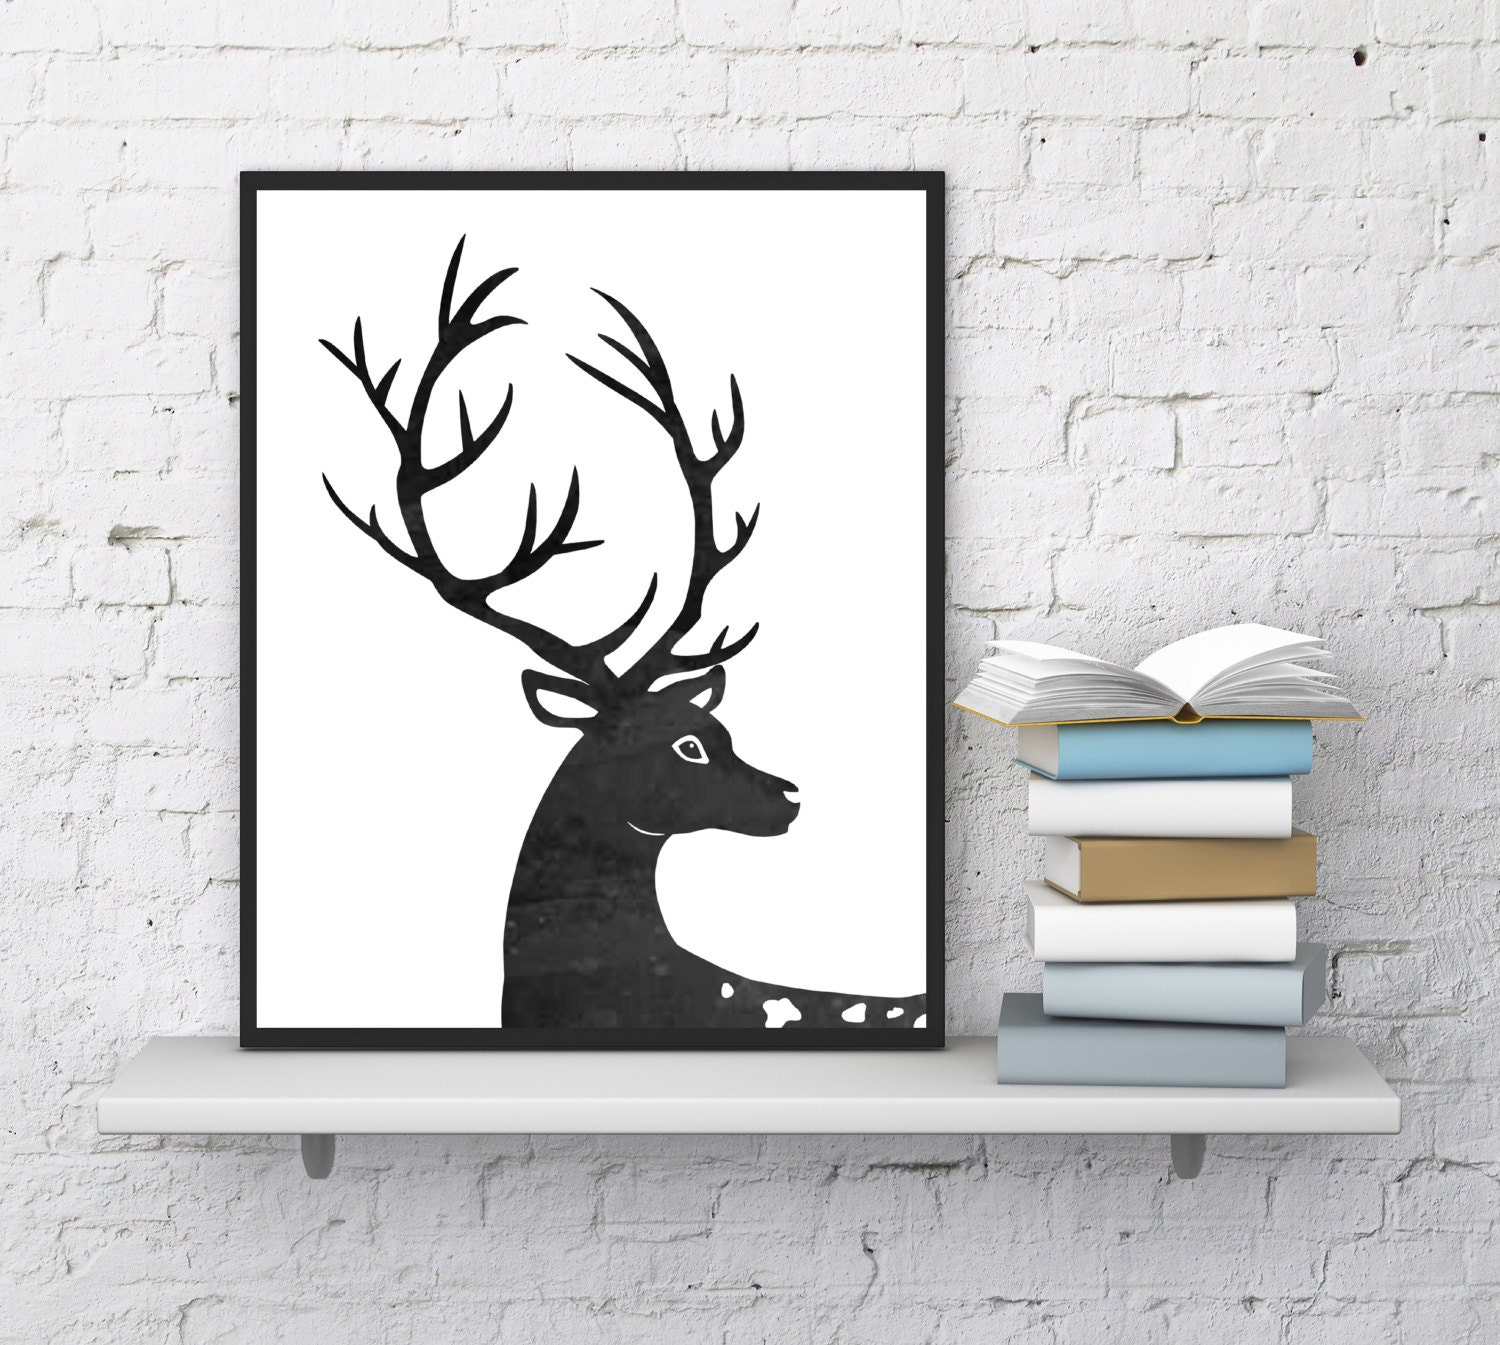 Wall Art Of Deer : Deer wall art print home decor by